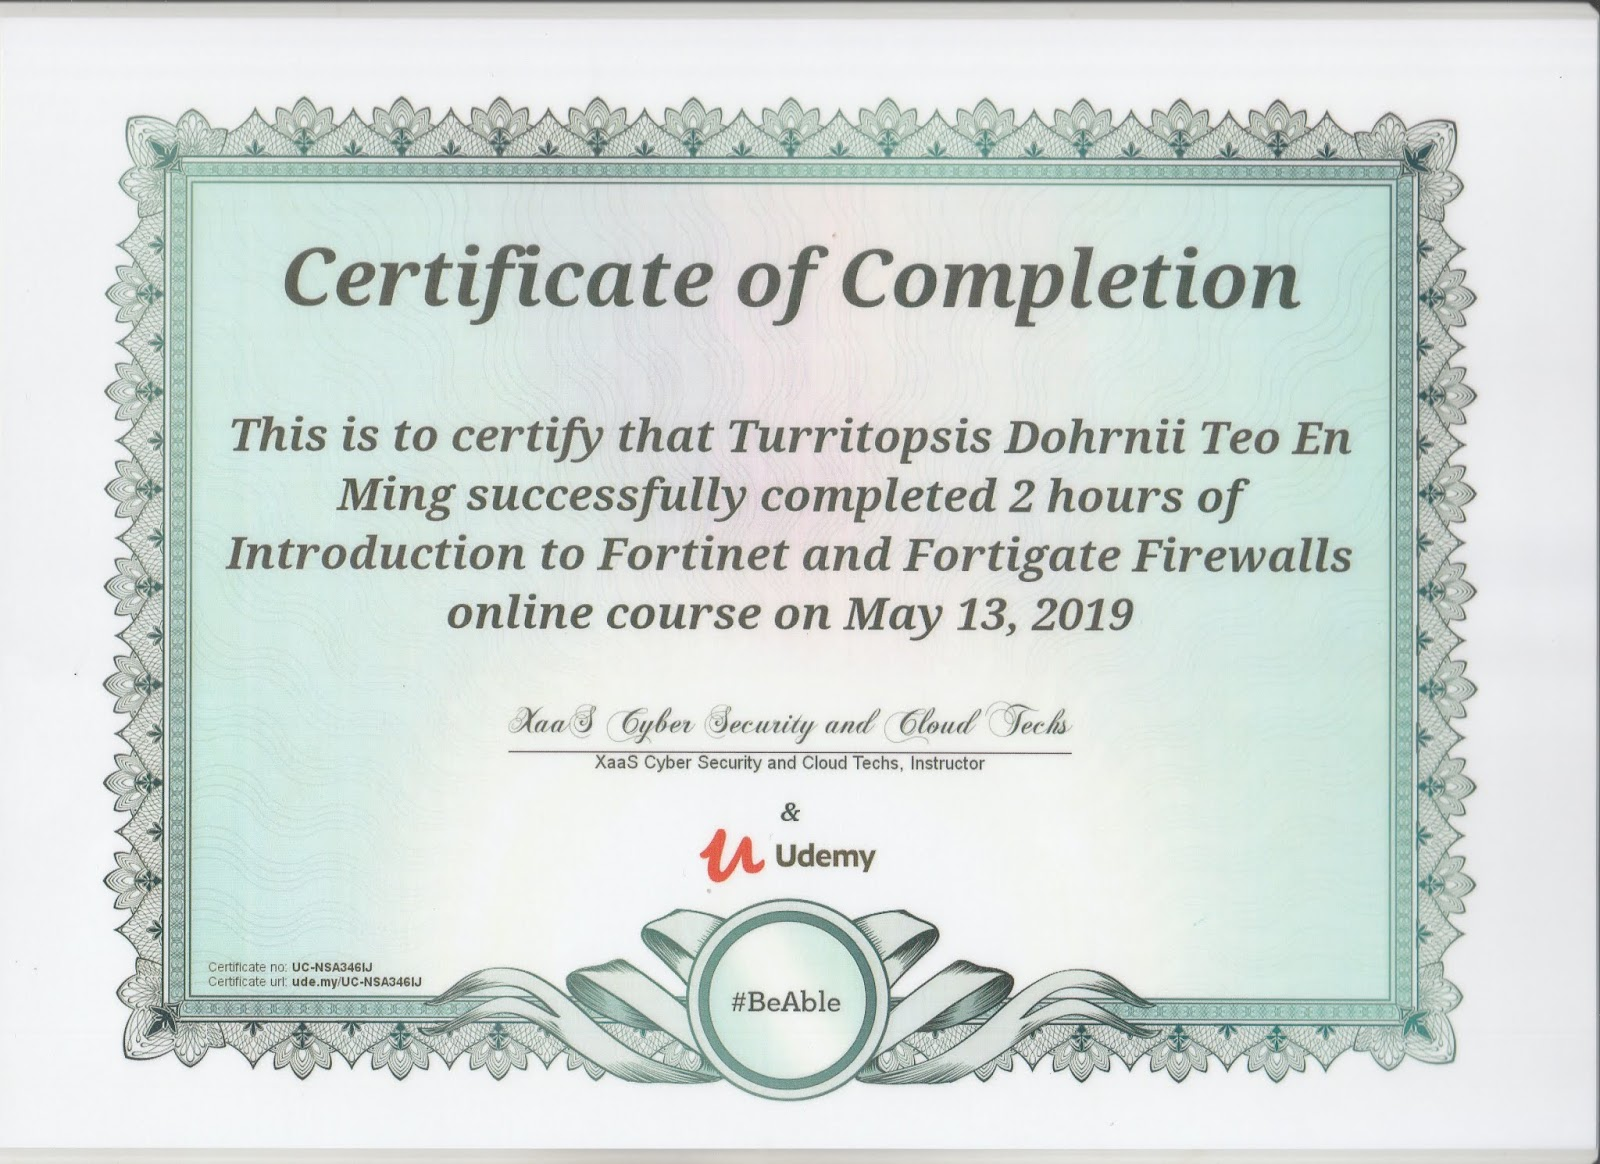 udemy certificate completion